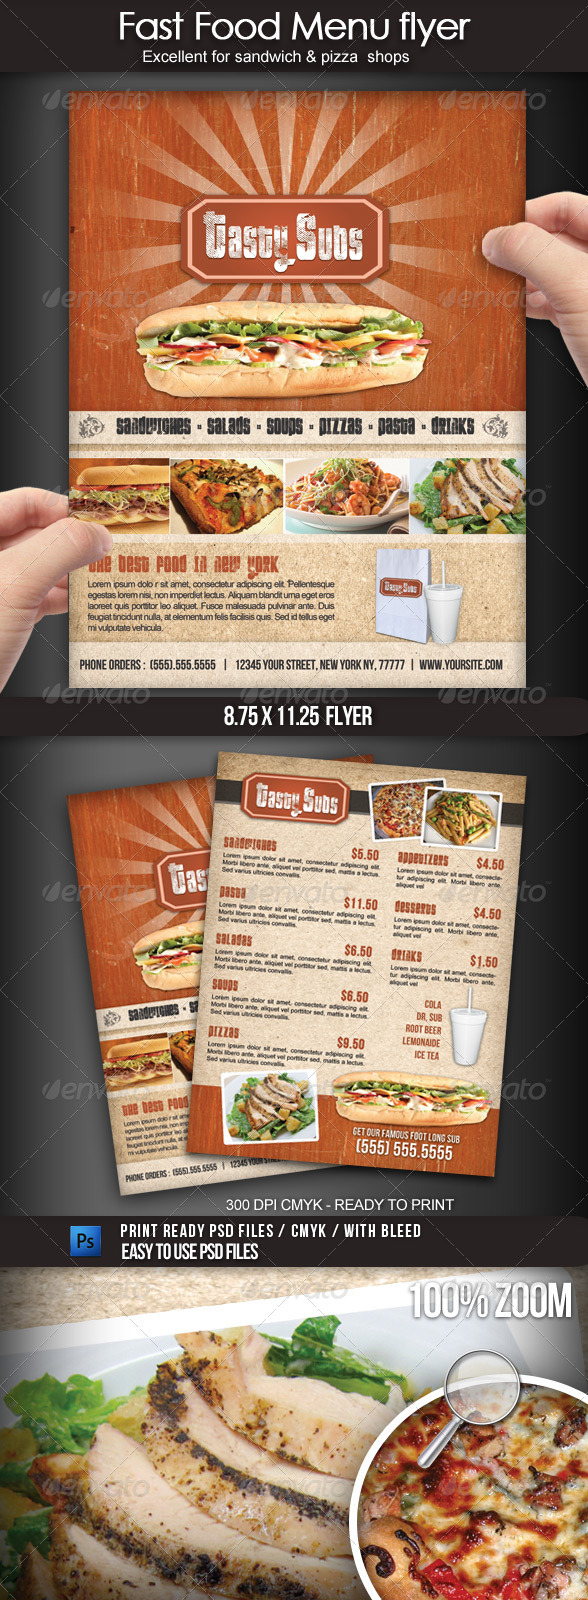 Fast Food Menu Flyer